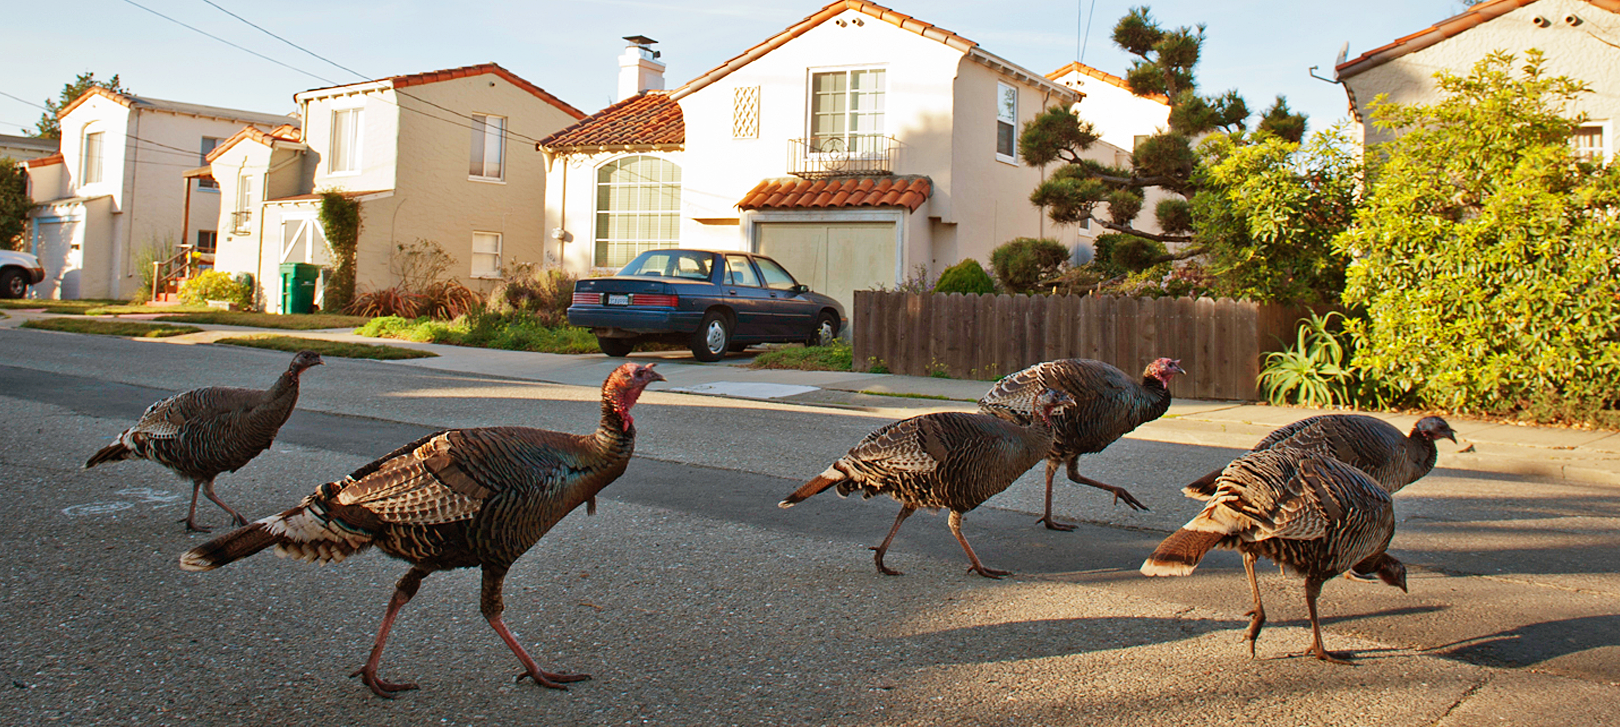 Albany wild turkeys corssing the street